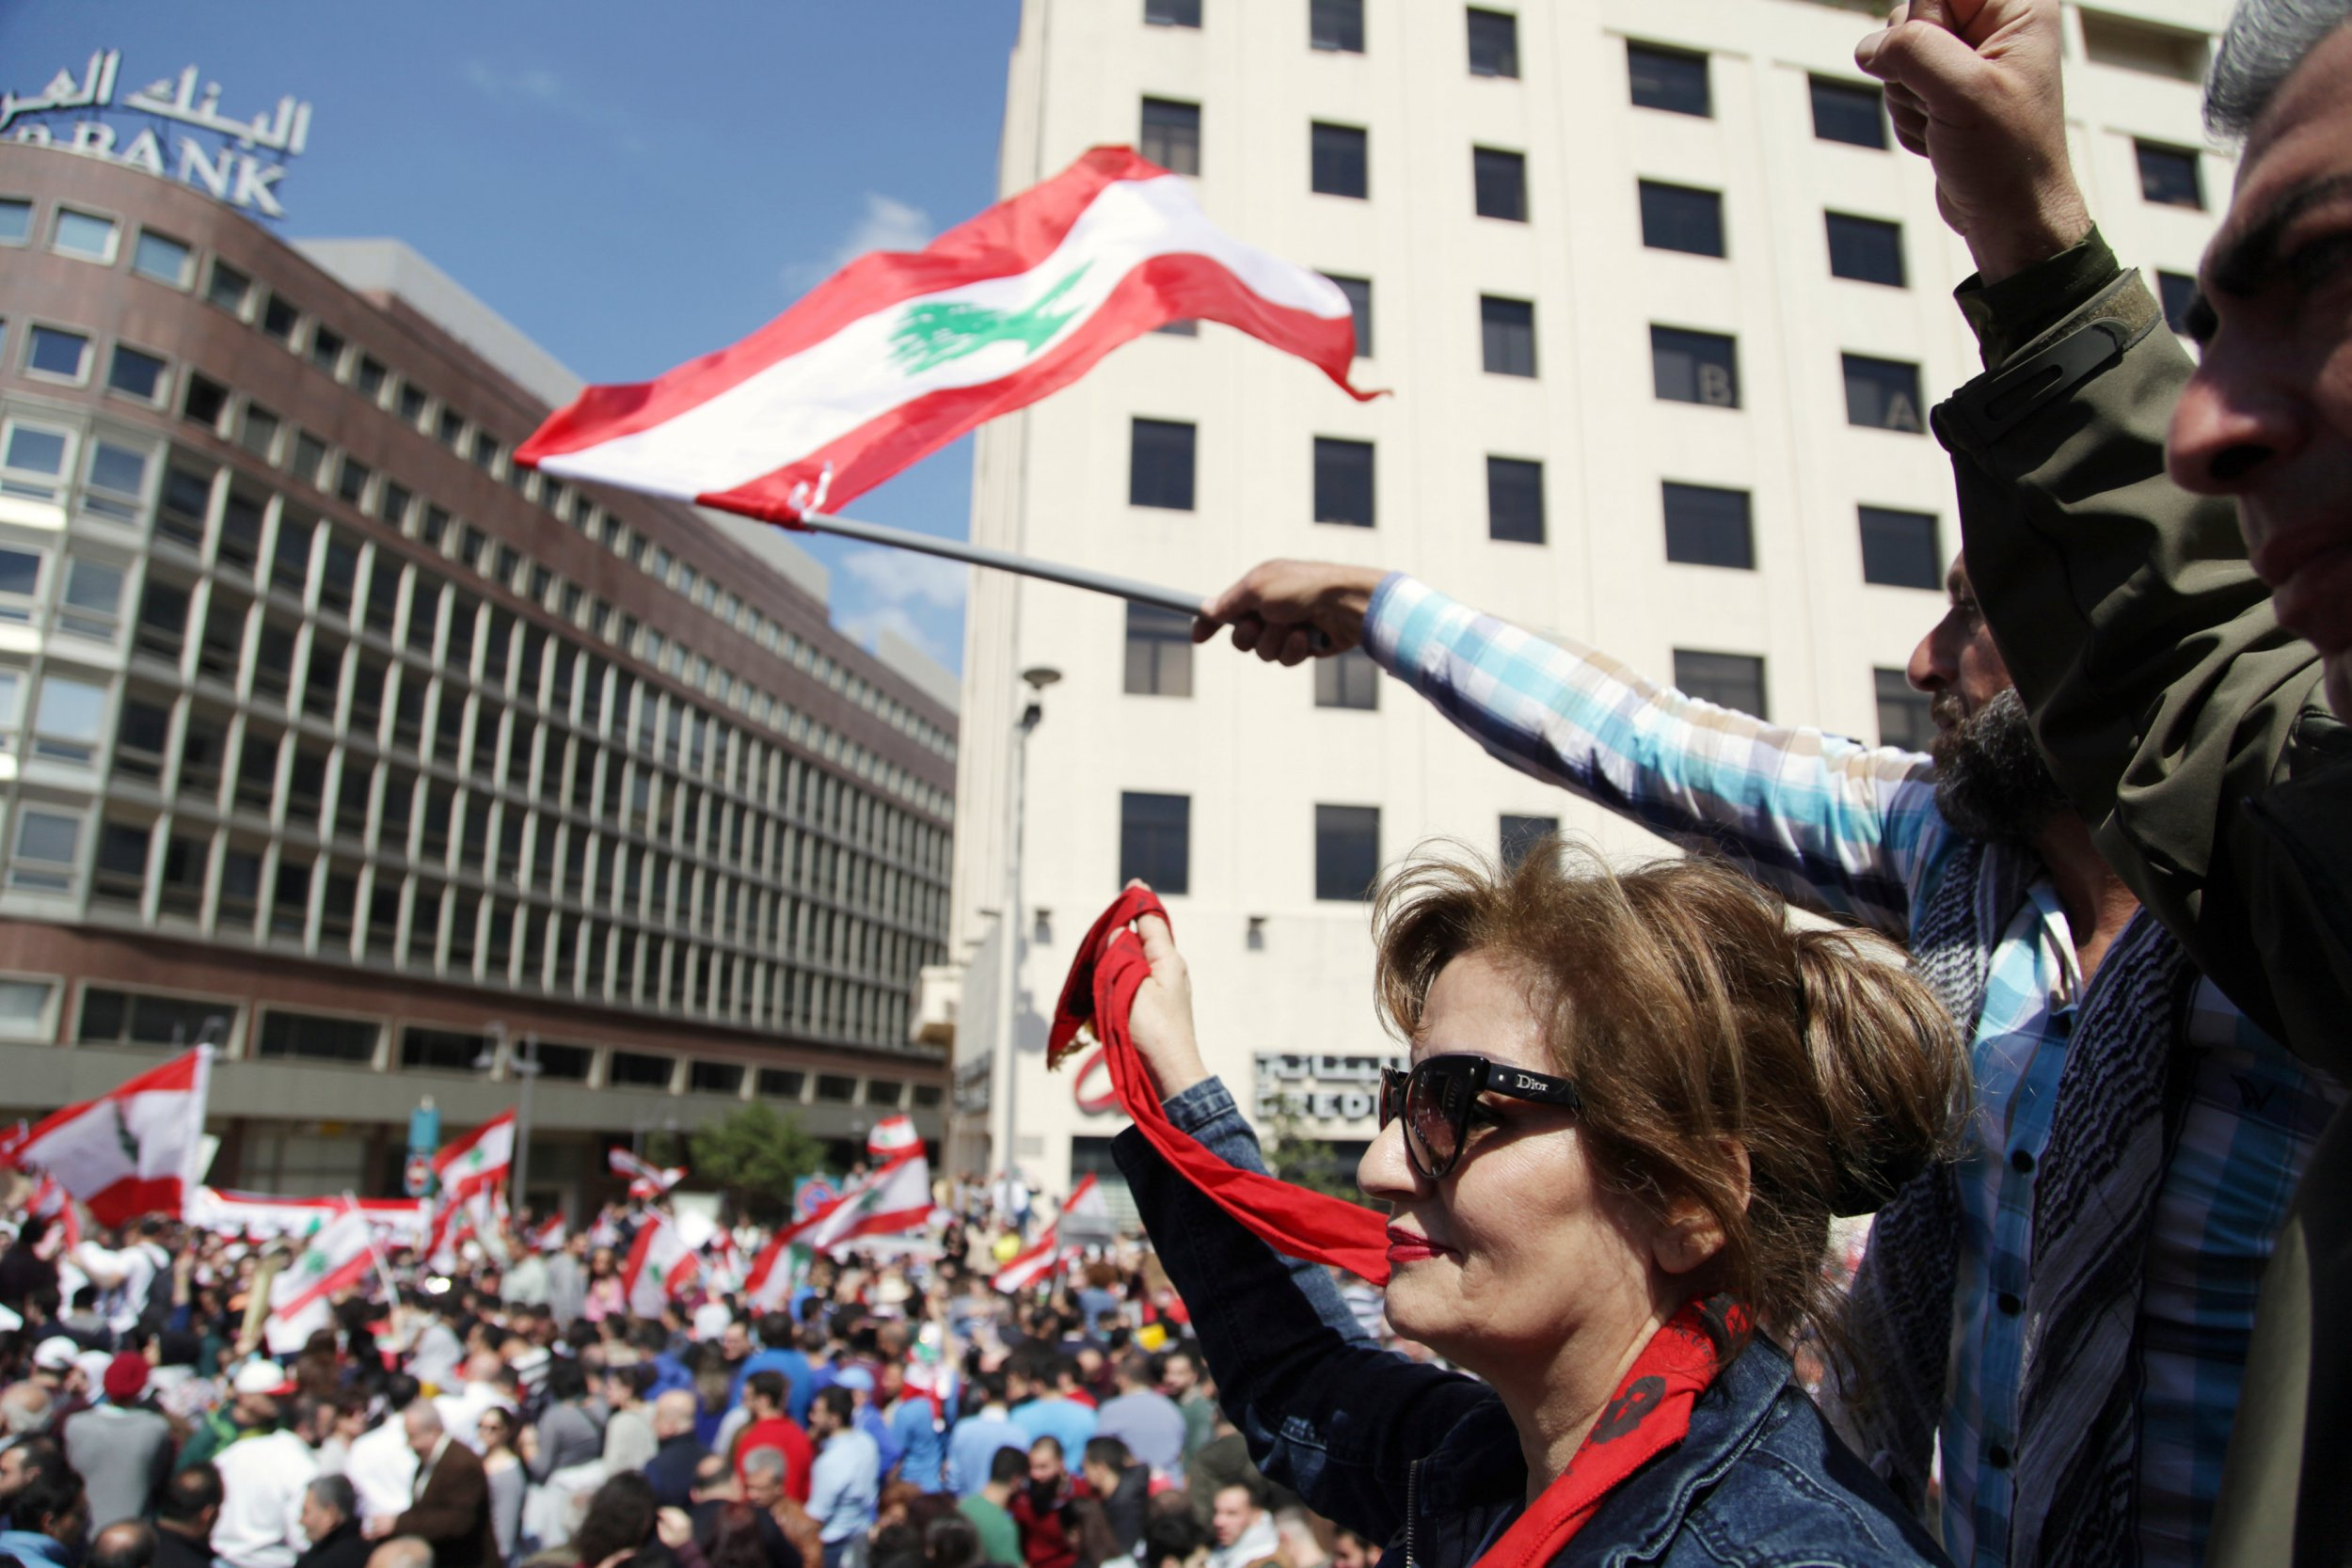 Protesters Hurl Water Bottles at Lebanese PM Over Proposed Tax Hikes